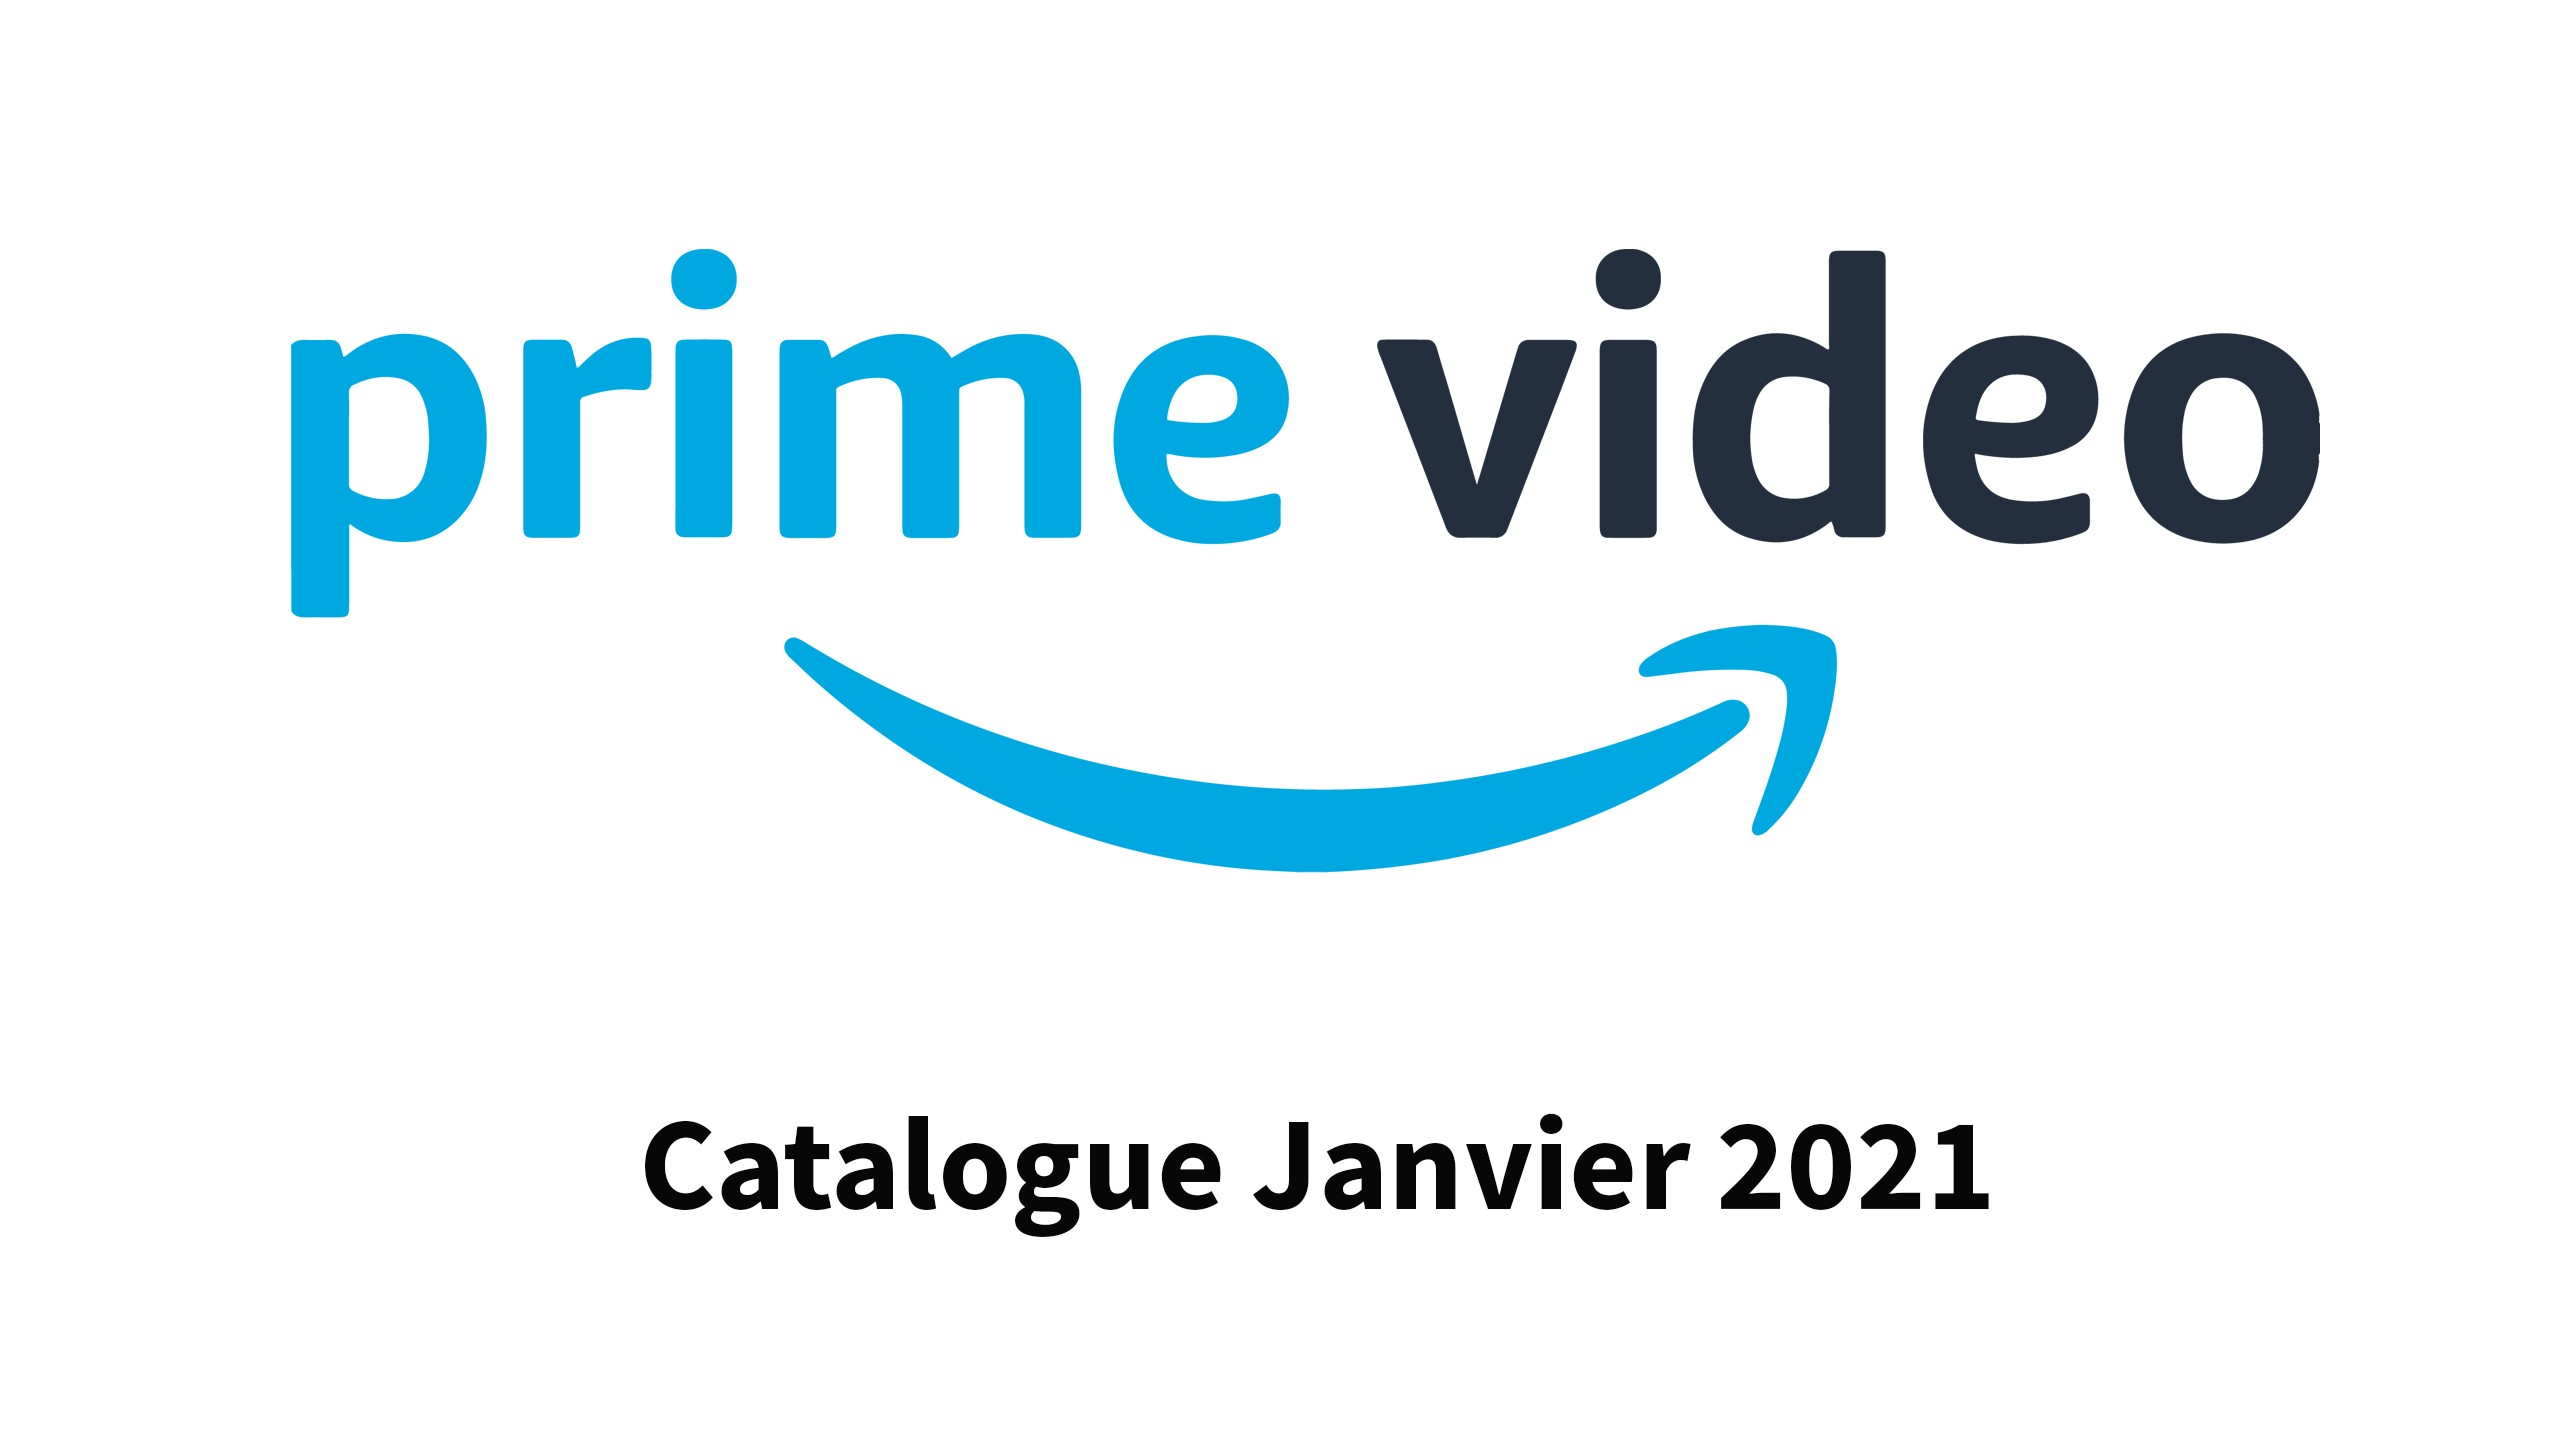 Prime Video : Catalogue de Janvier 2021 !